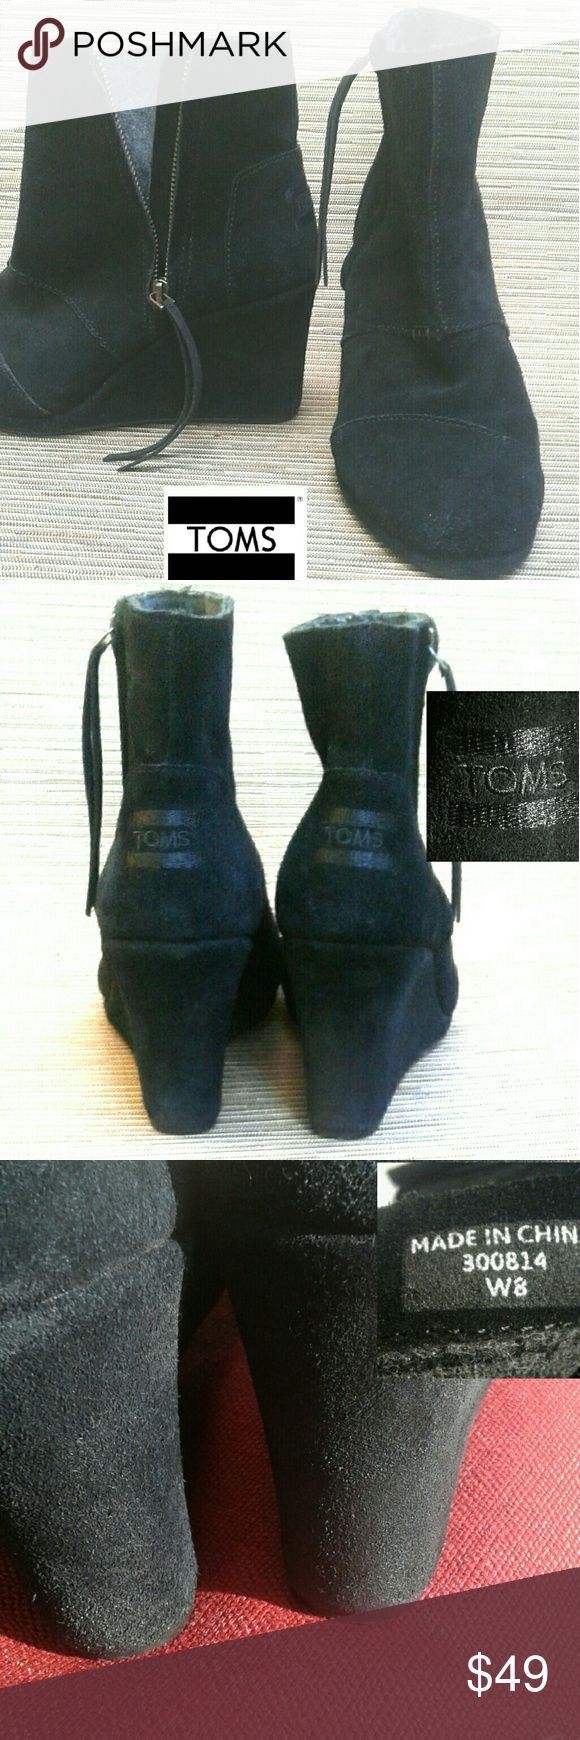 Toms desert black suede wedge boot W8 Very good used condition, w/no bare spots on suede.  -high ankle boot -rounded toe -side zipper w/tassle -customer rated true to size  ***size is 8 wide TOMS Shoes Ankle Boots & Booties